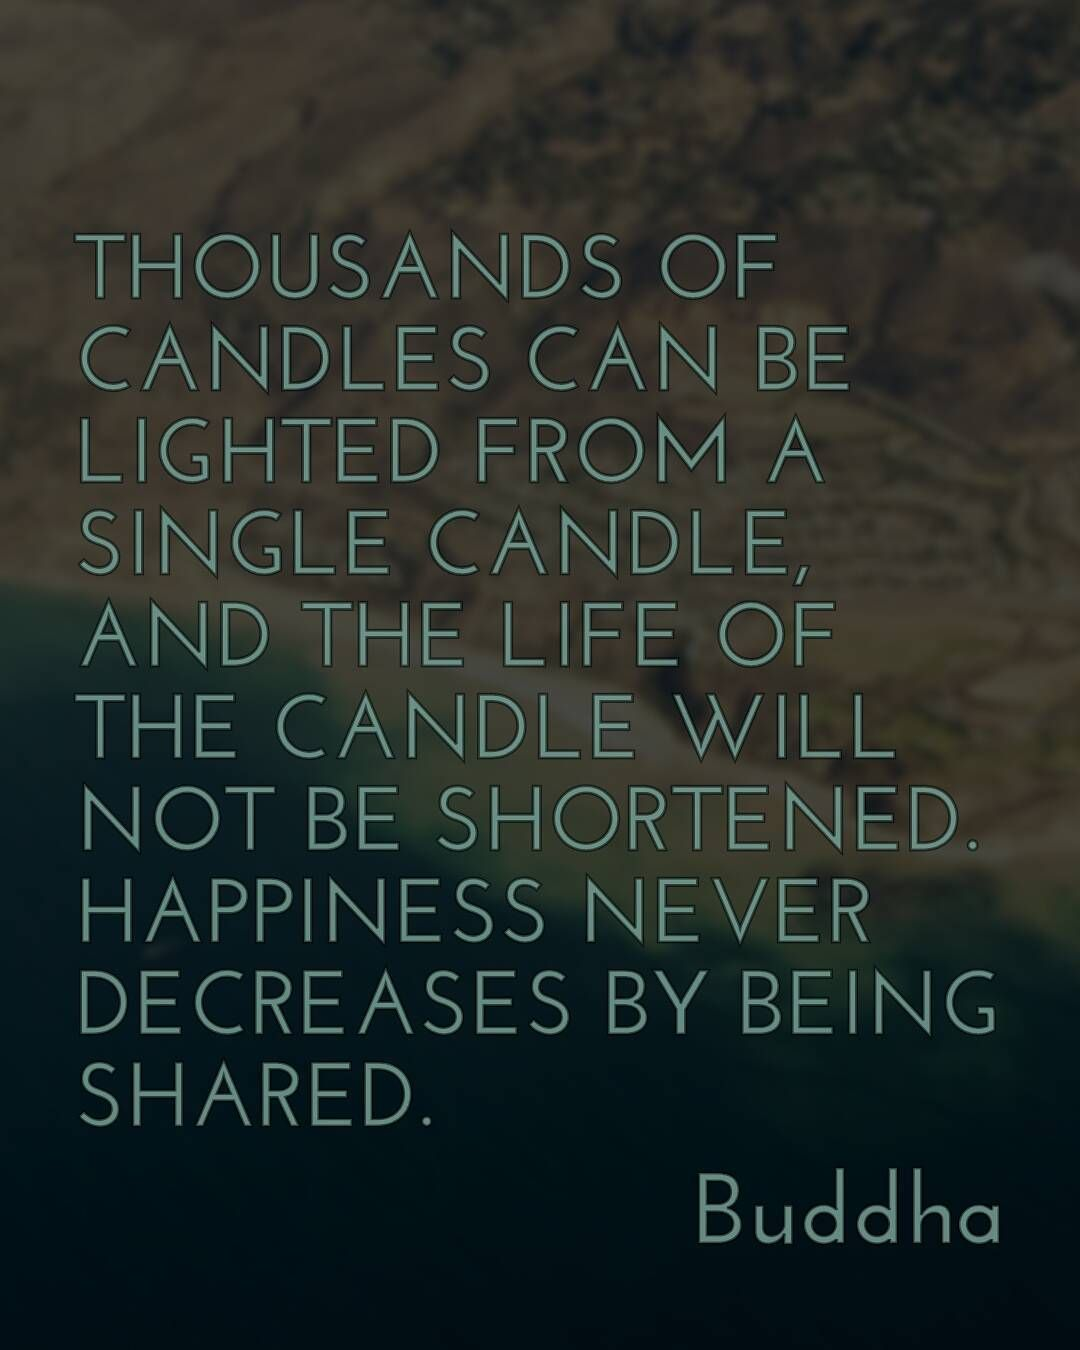 Thousands Of Candles Can Be Lighted From A Single Candle And The Life